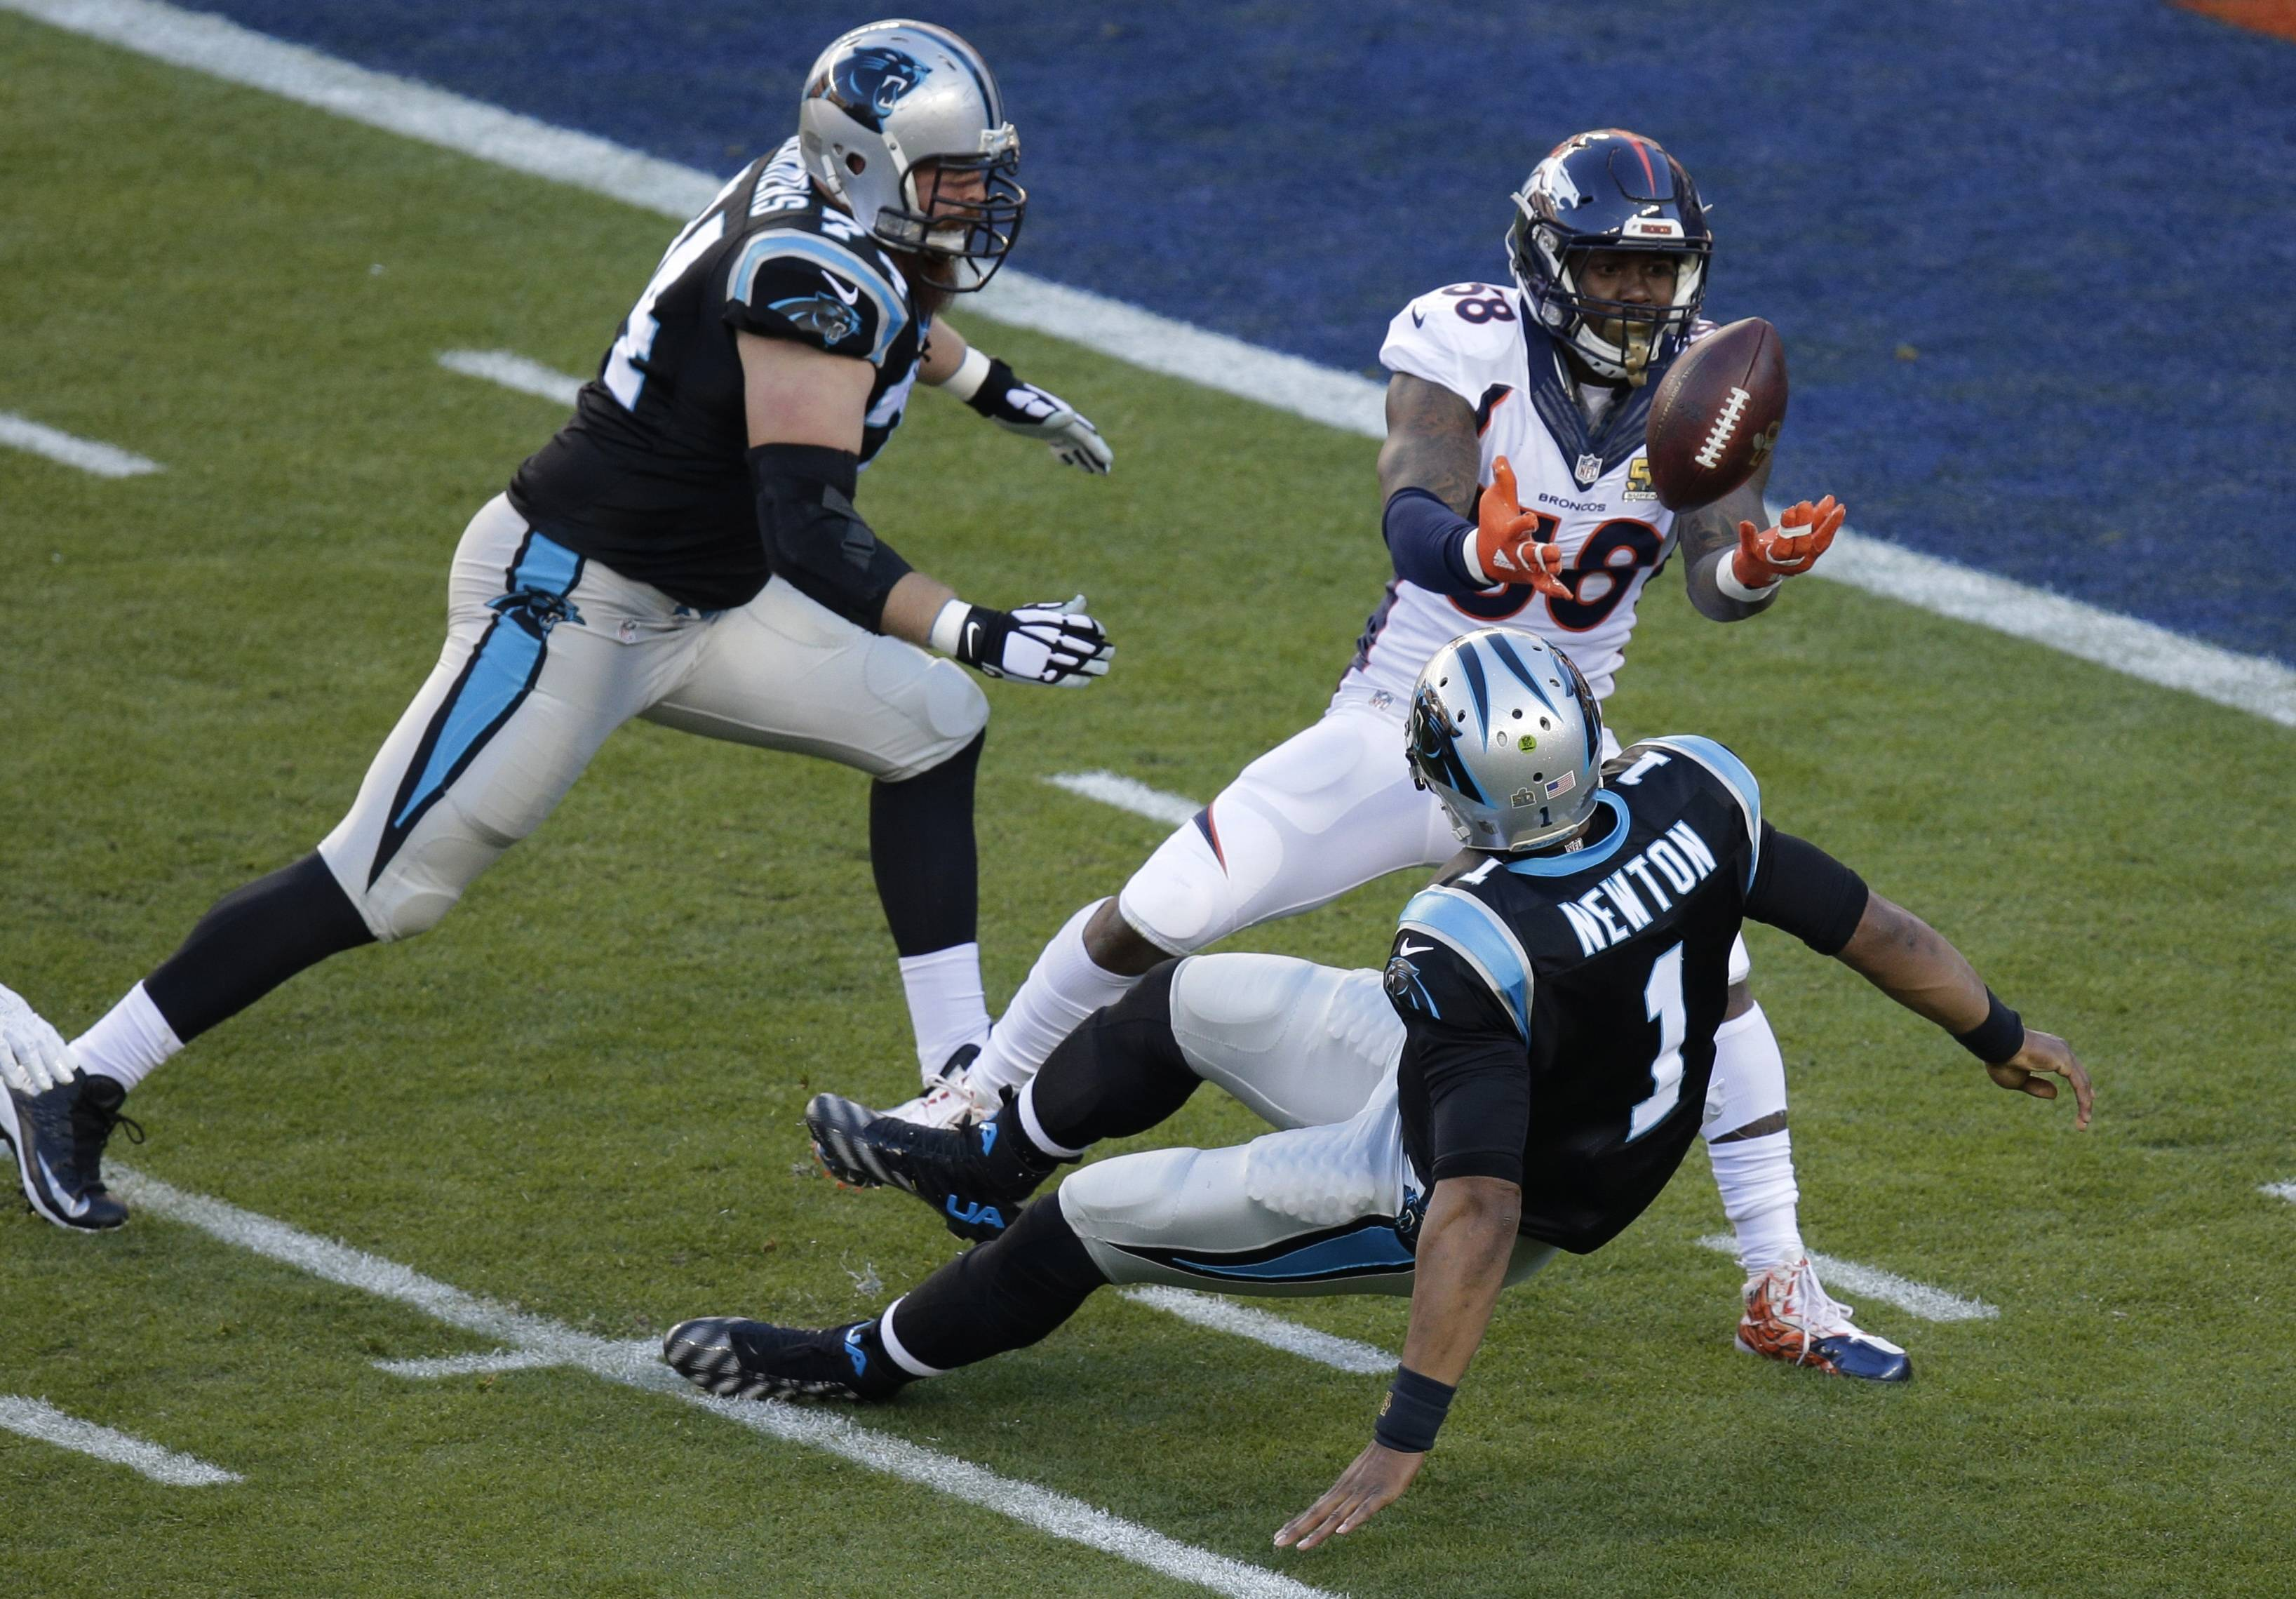 Denver linebacker Von Miller strips the ball from Carolina QB Cam Newton during the first half of Super Bowl 50. The Broncos recovered the ball for a touchdown.